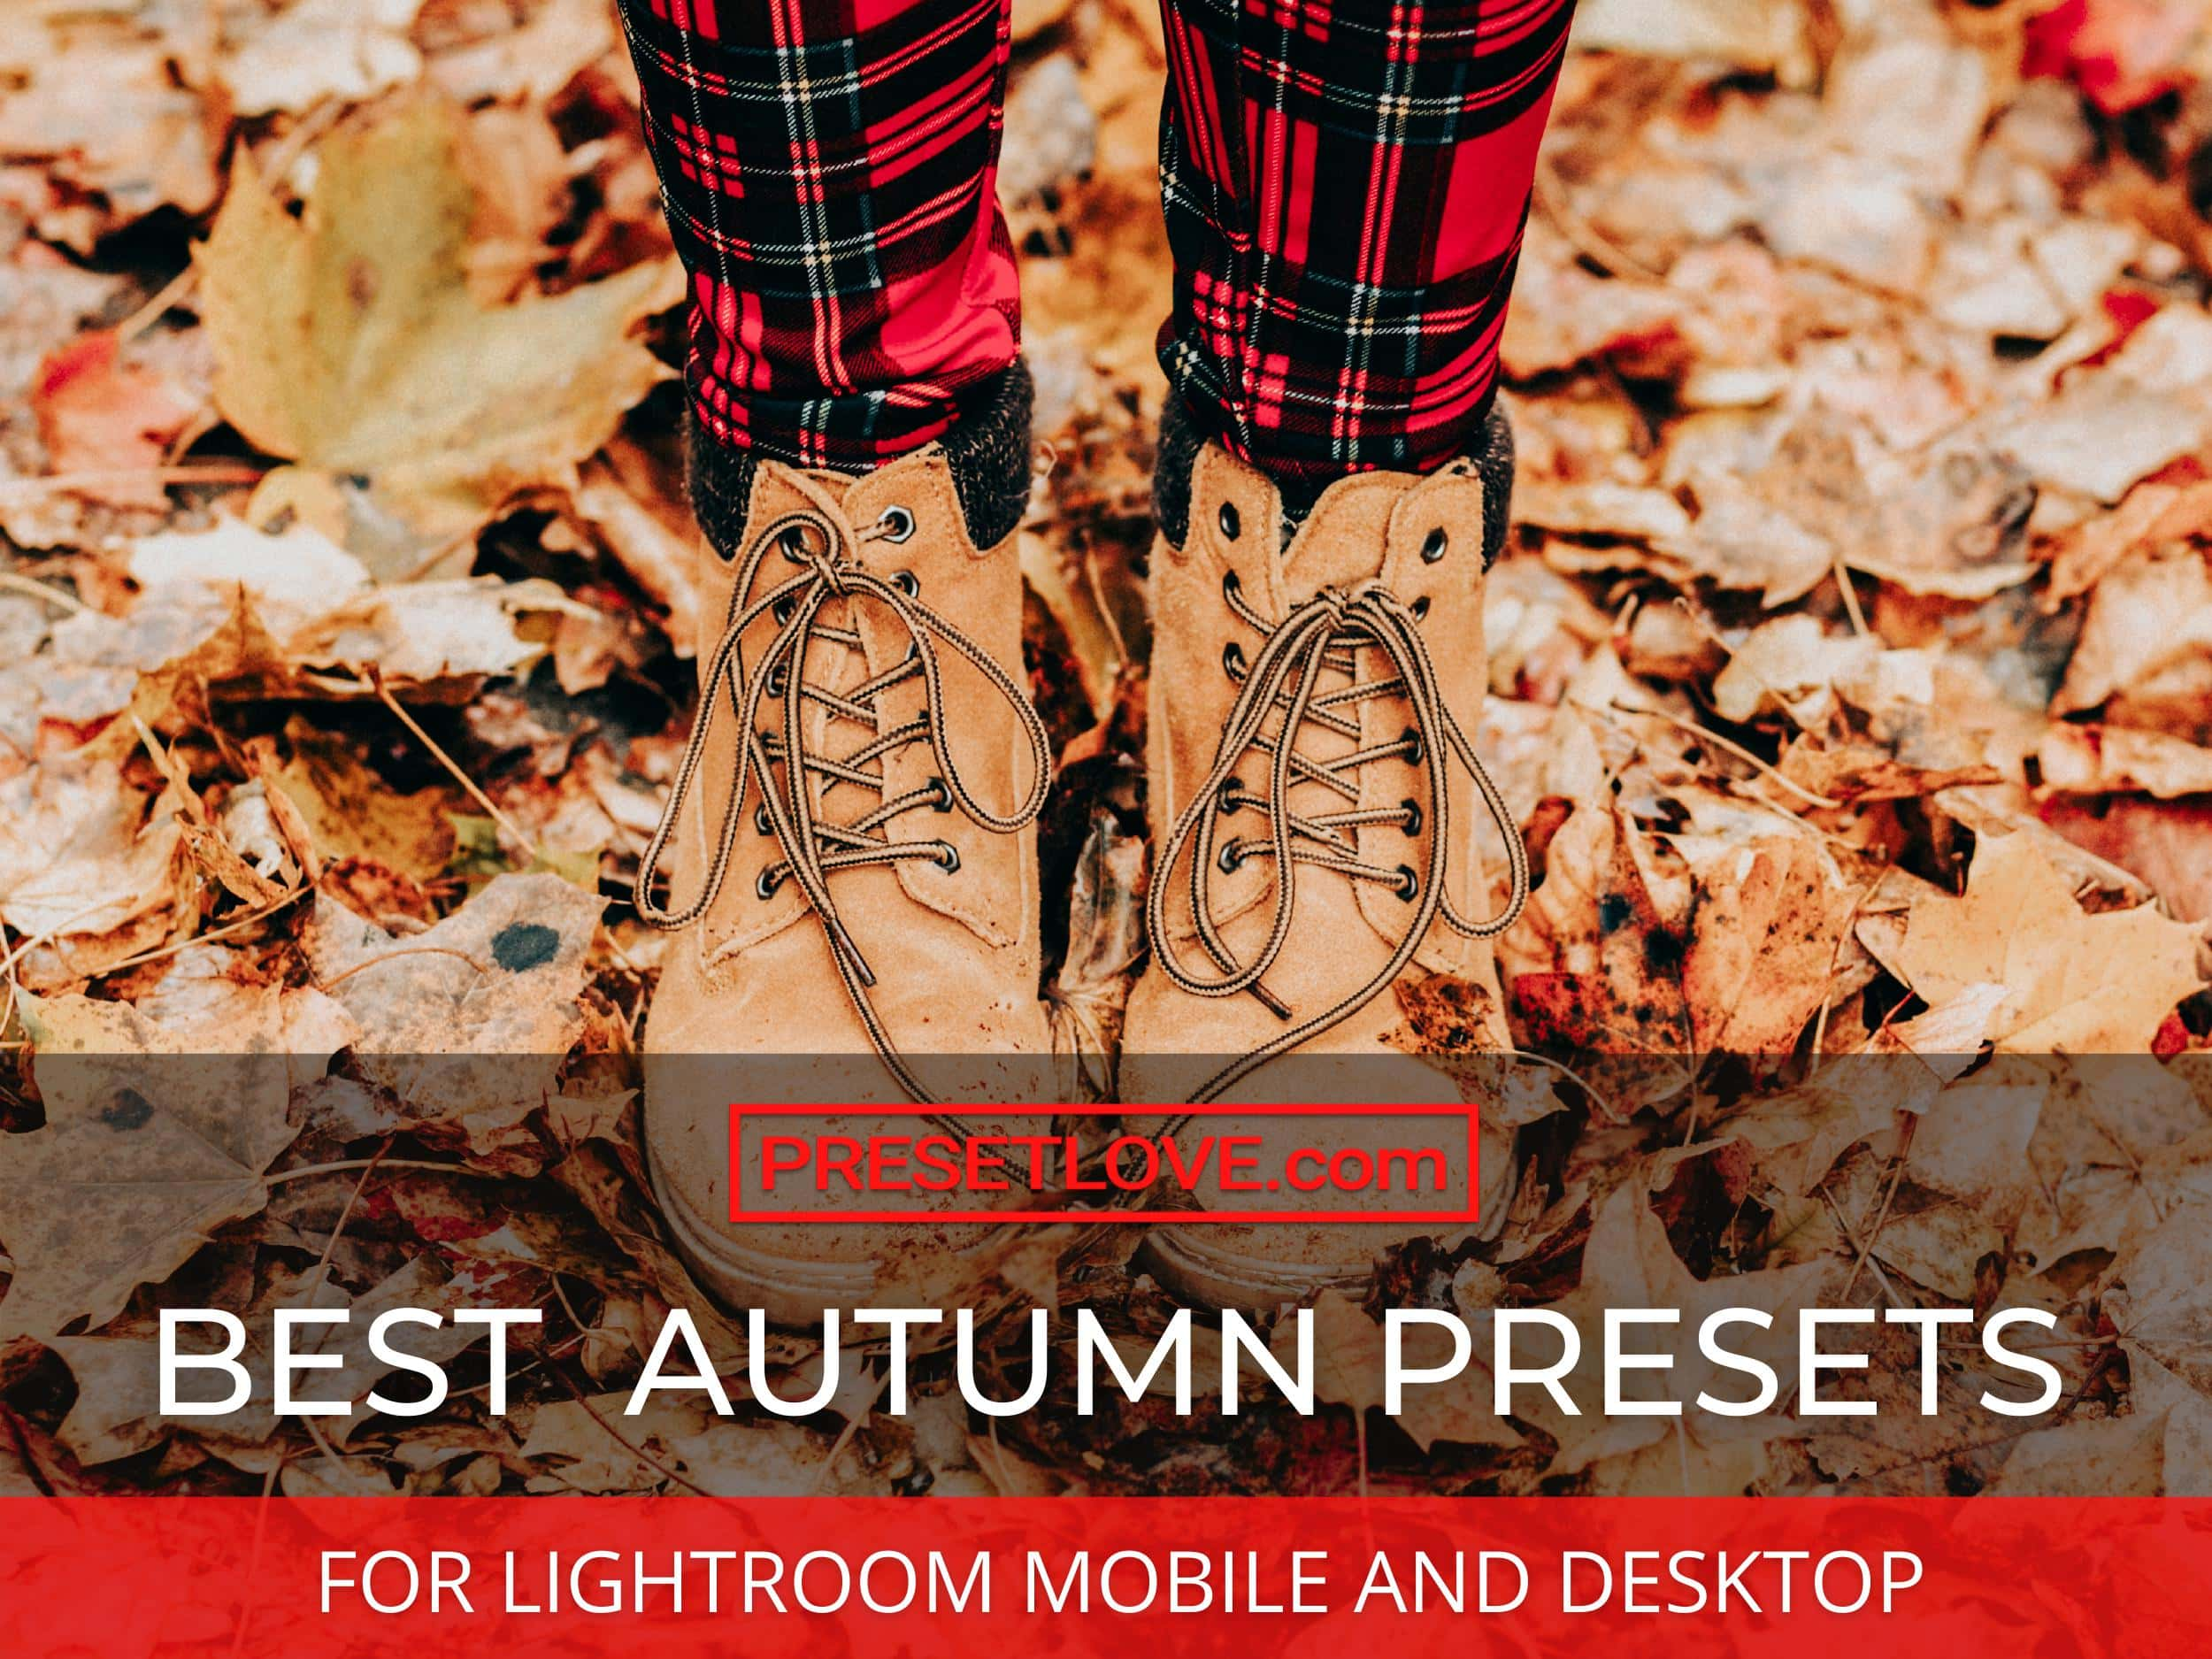 Best Fall Presets for Lightroom - PresetLove Fall Presets